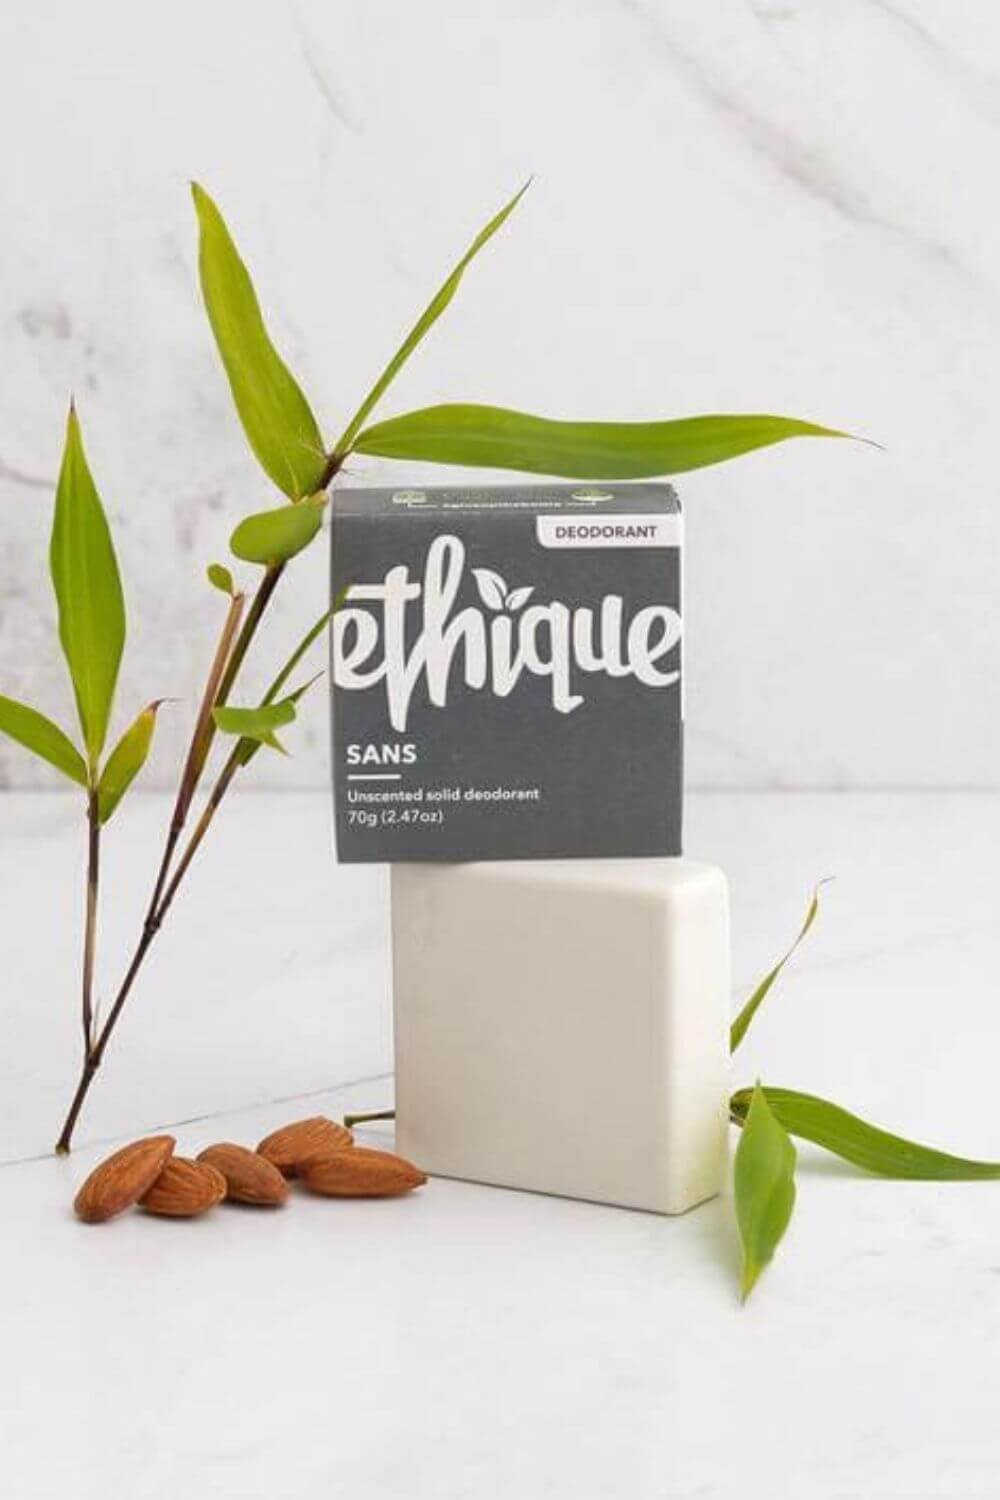 We're meant to sweat. So finding the best natural and environmentally friendly deodorant, one that really works and is actually natural is pretty important! Here's our list... Image by Ethique #environmentallfriendlydeodorant #sustainablejungle